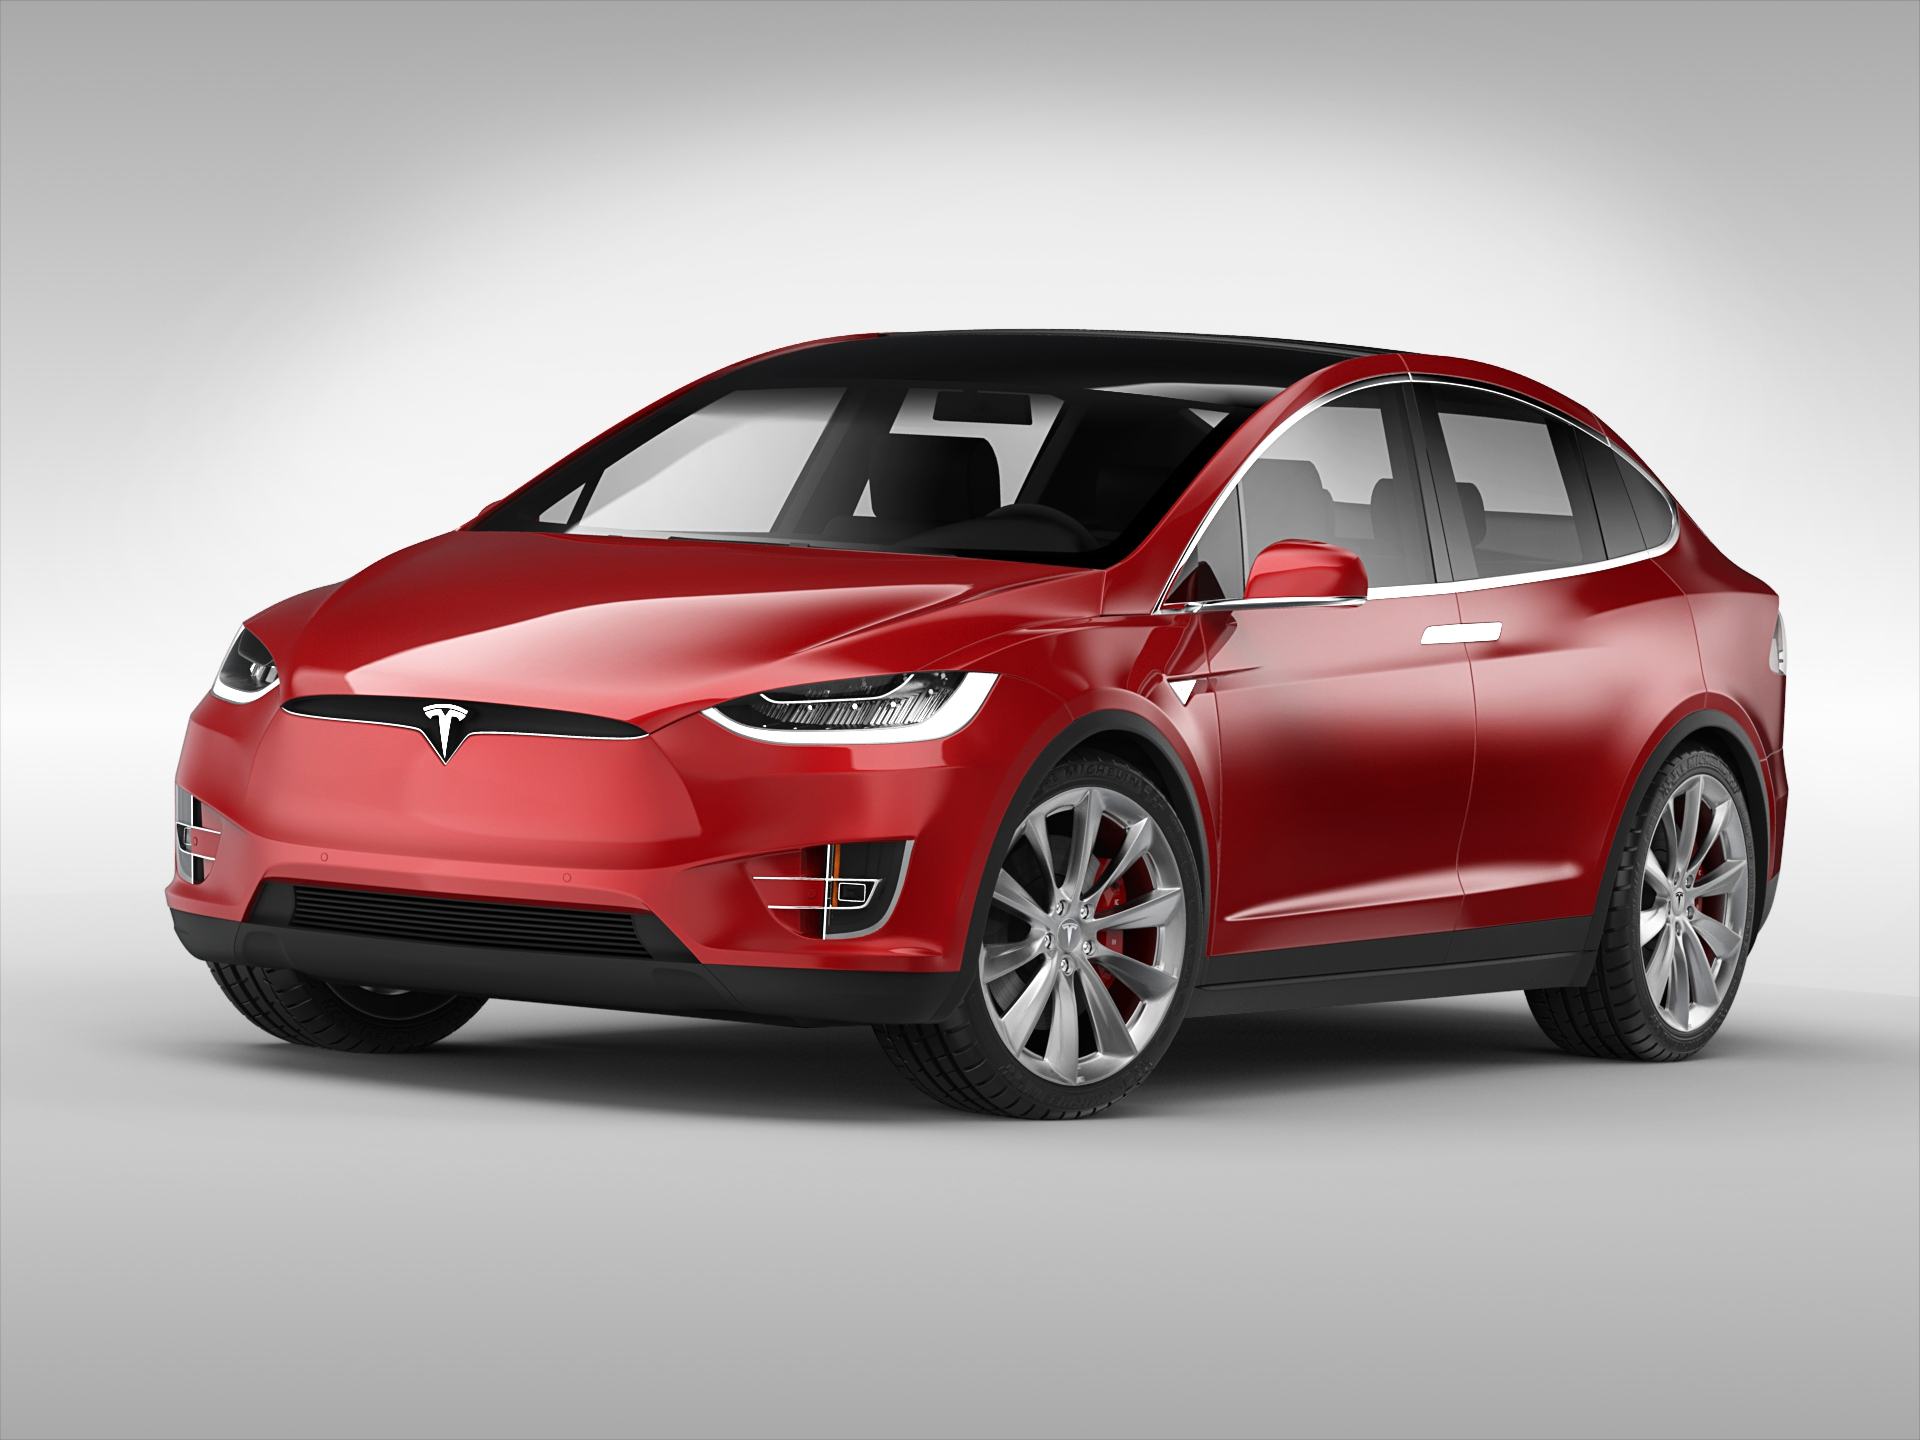 tesla model x 2017 3d model. Black Bedroom Furniture Sets. Home Design Ideas